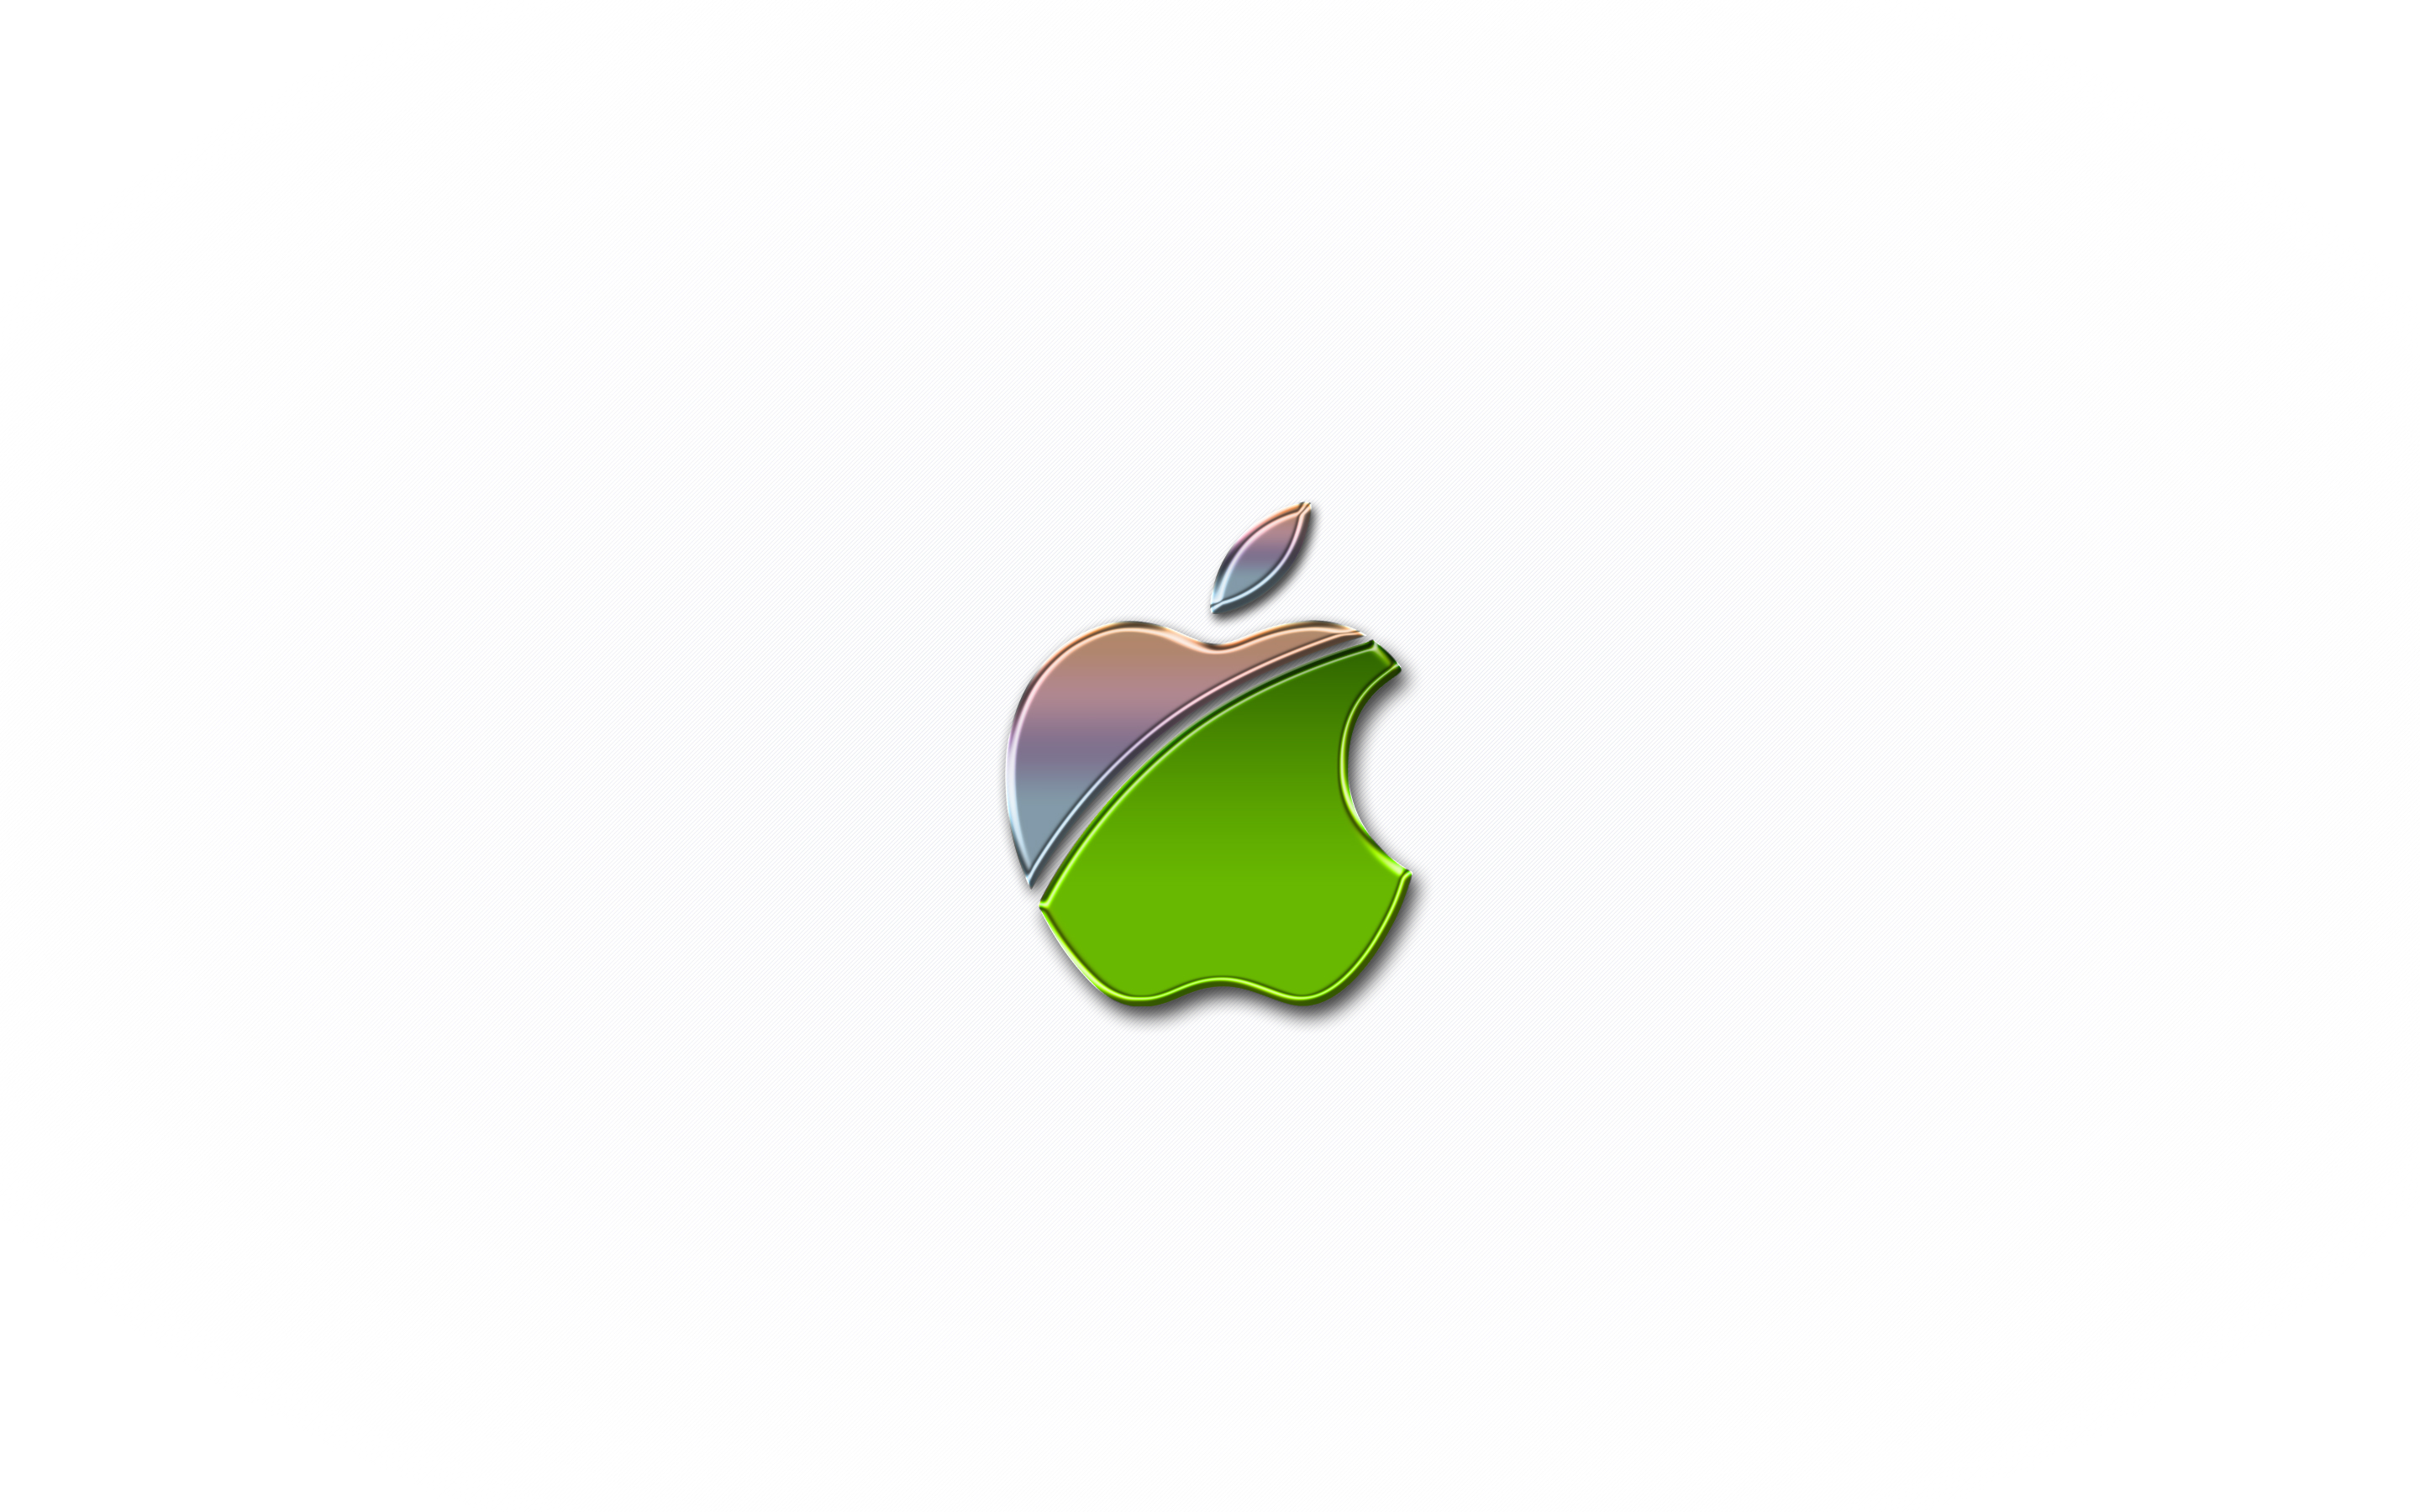 iPhone iPad MacBook Air MacBook Pro iMac Apple Logo Wallpaper 壁紙 メタルグリーン